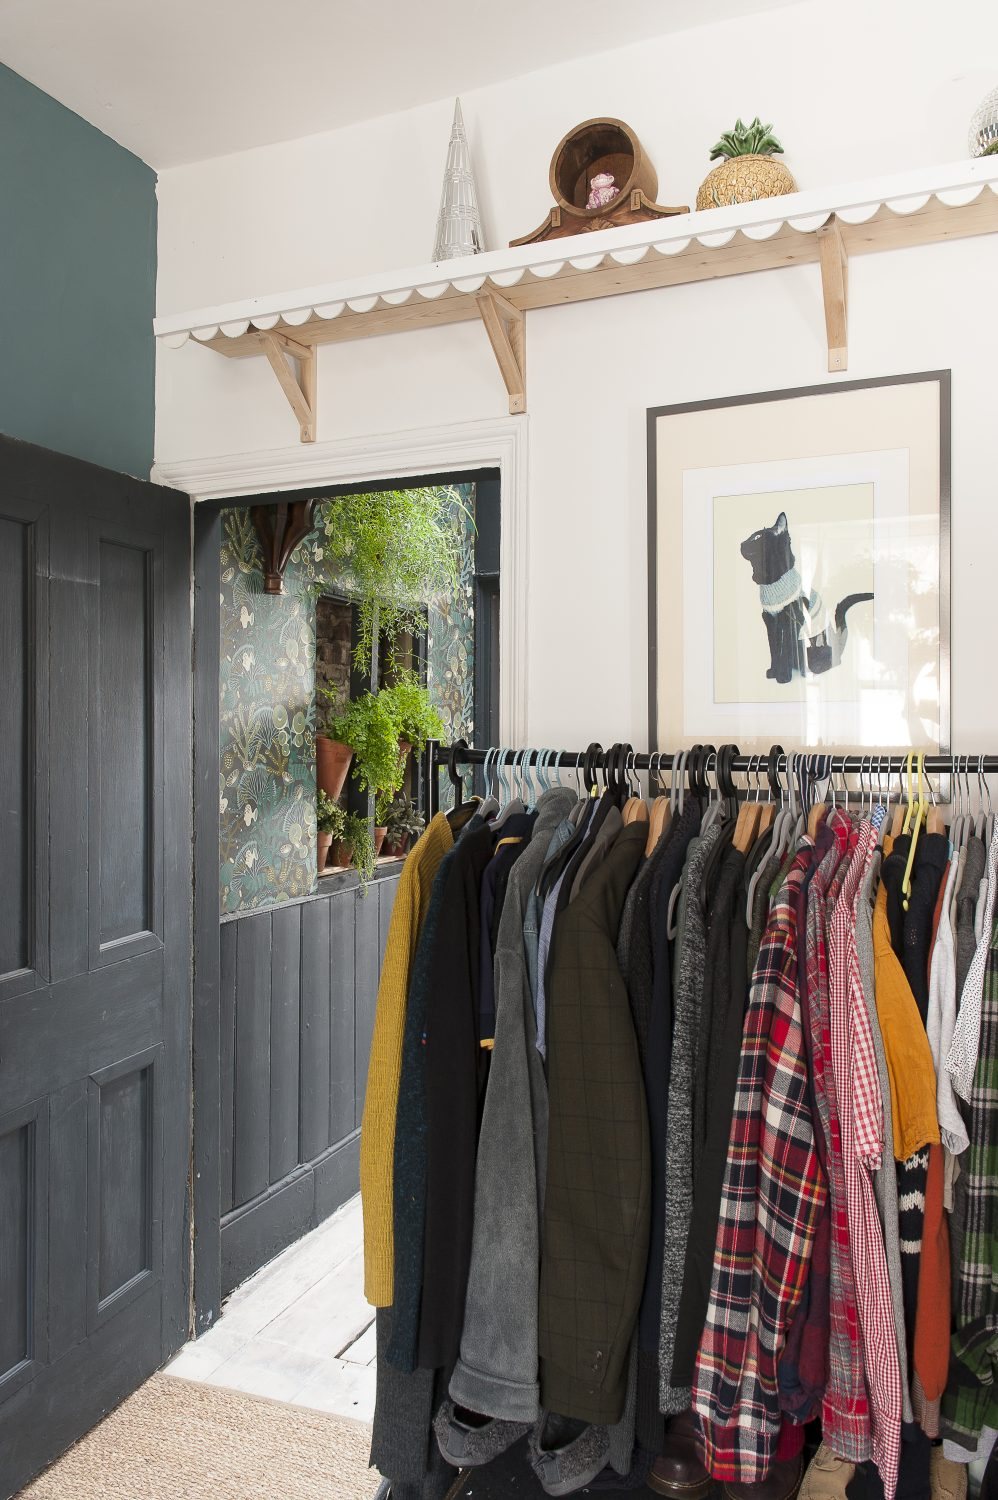 One of the shelves made with a scalloped edge, sits above a rail of clothes